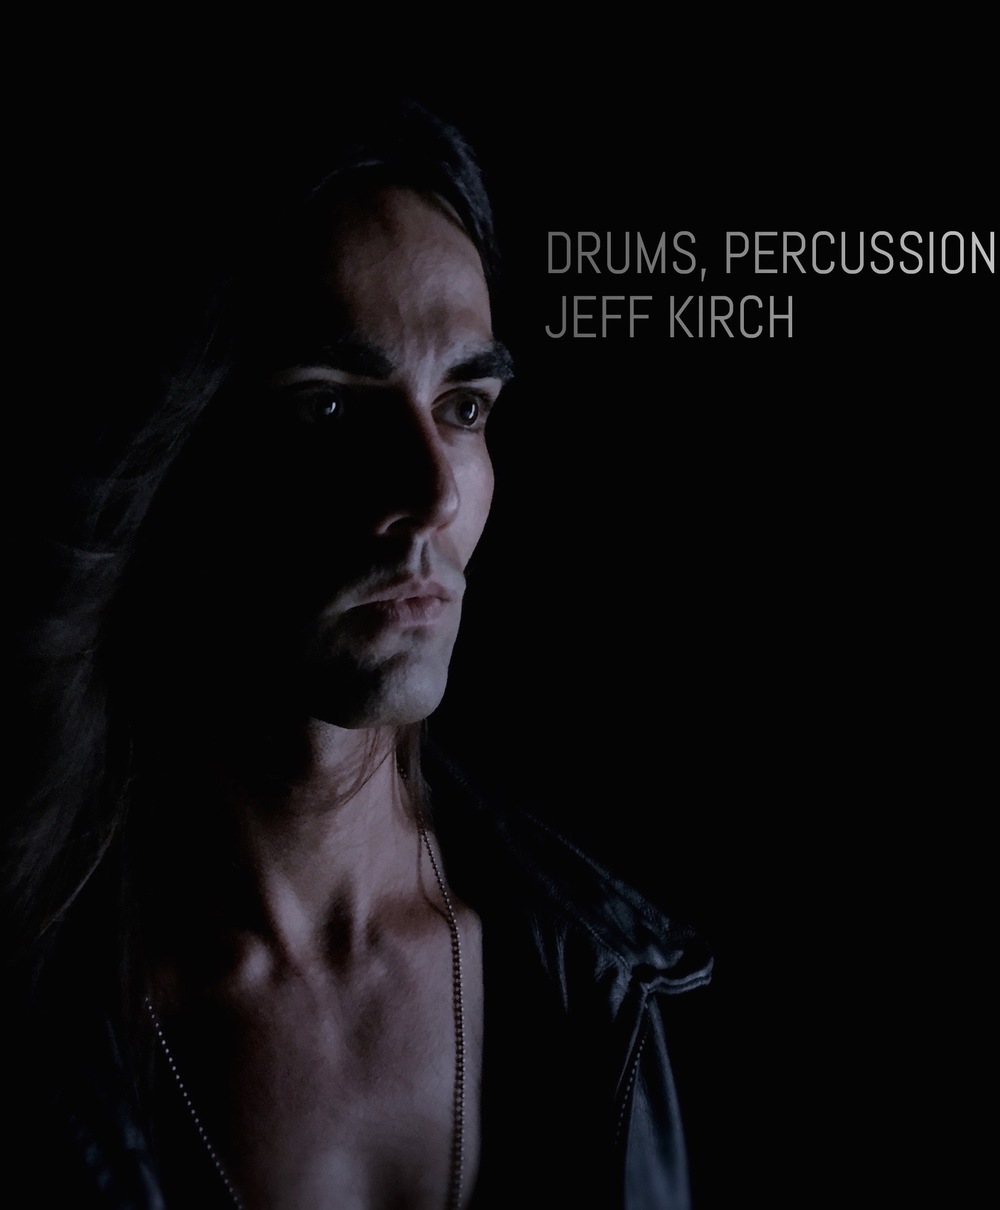 Jeff Kirch